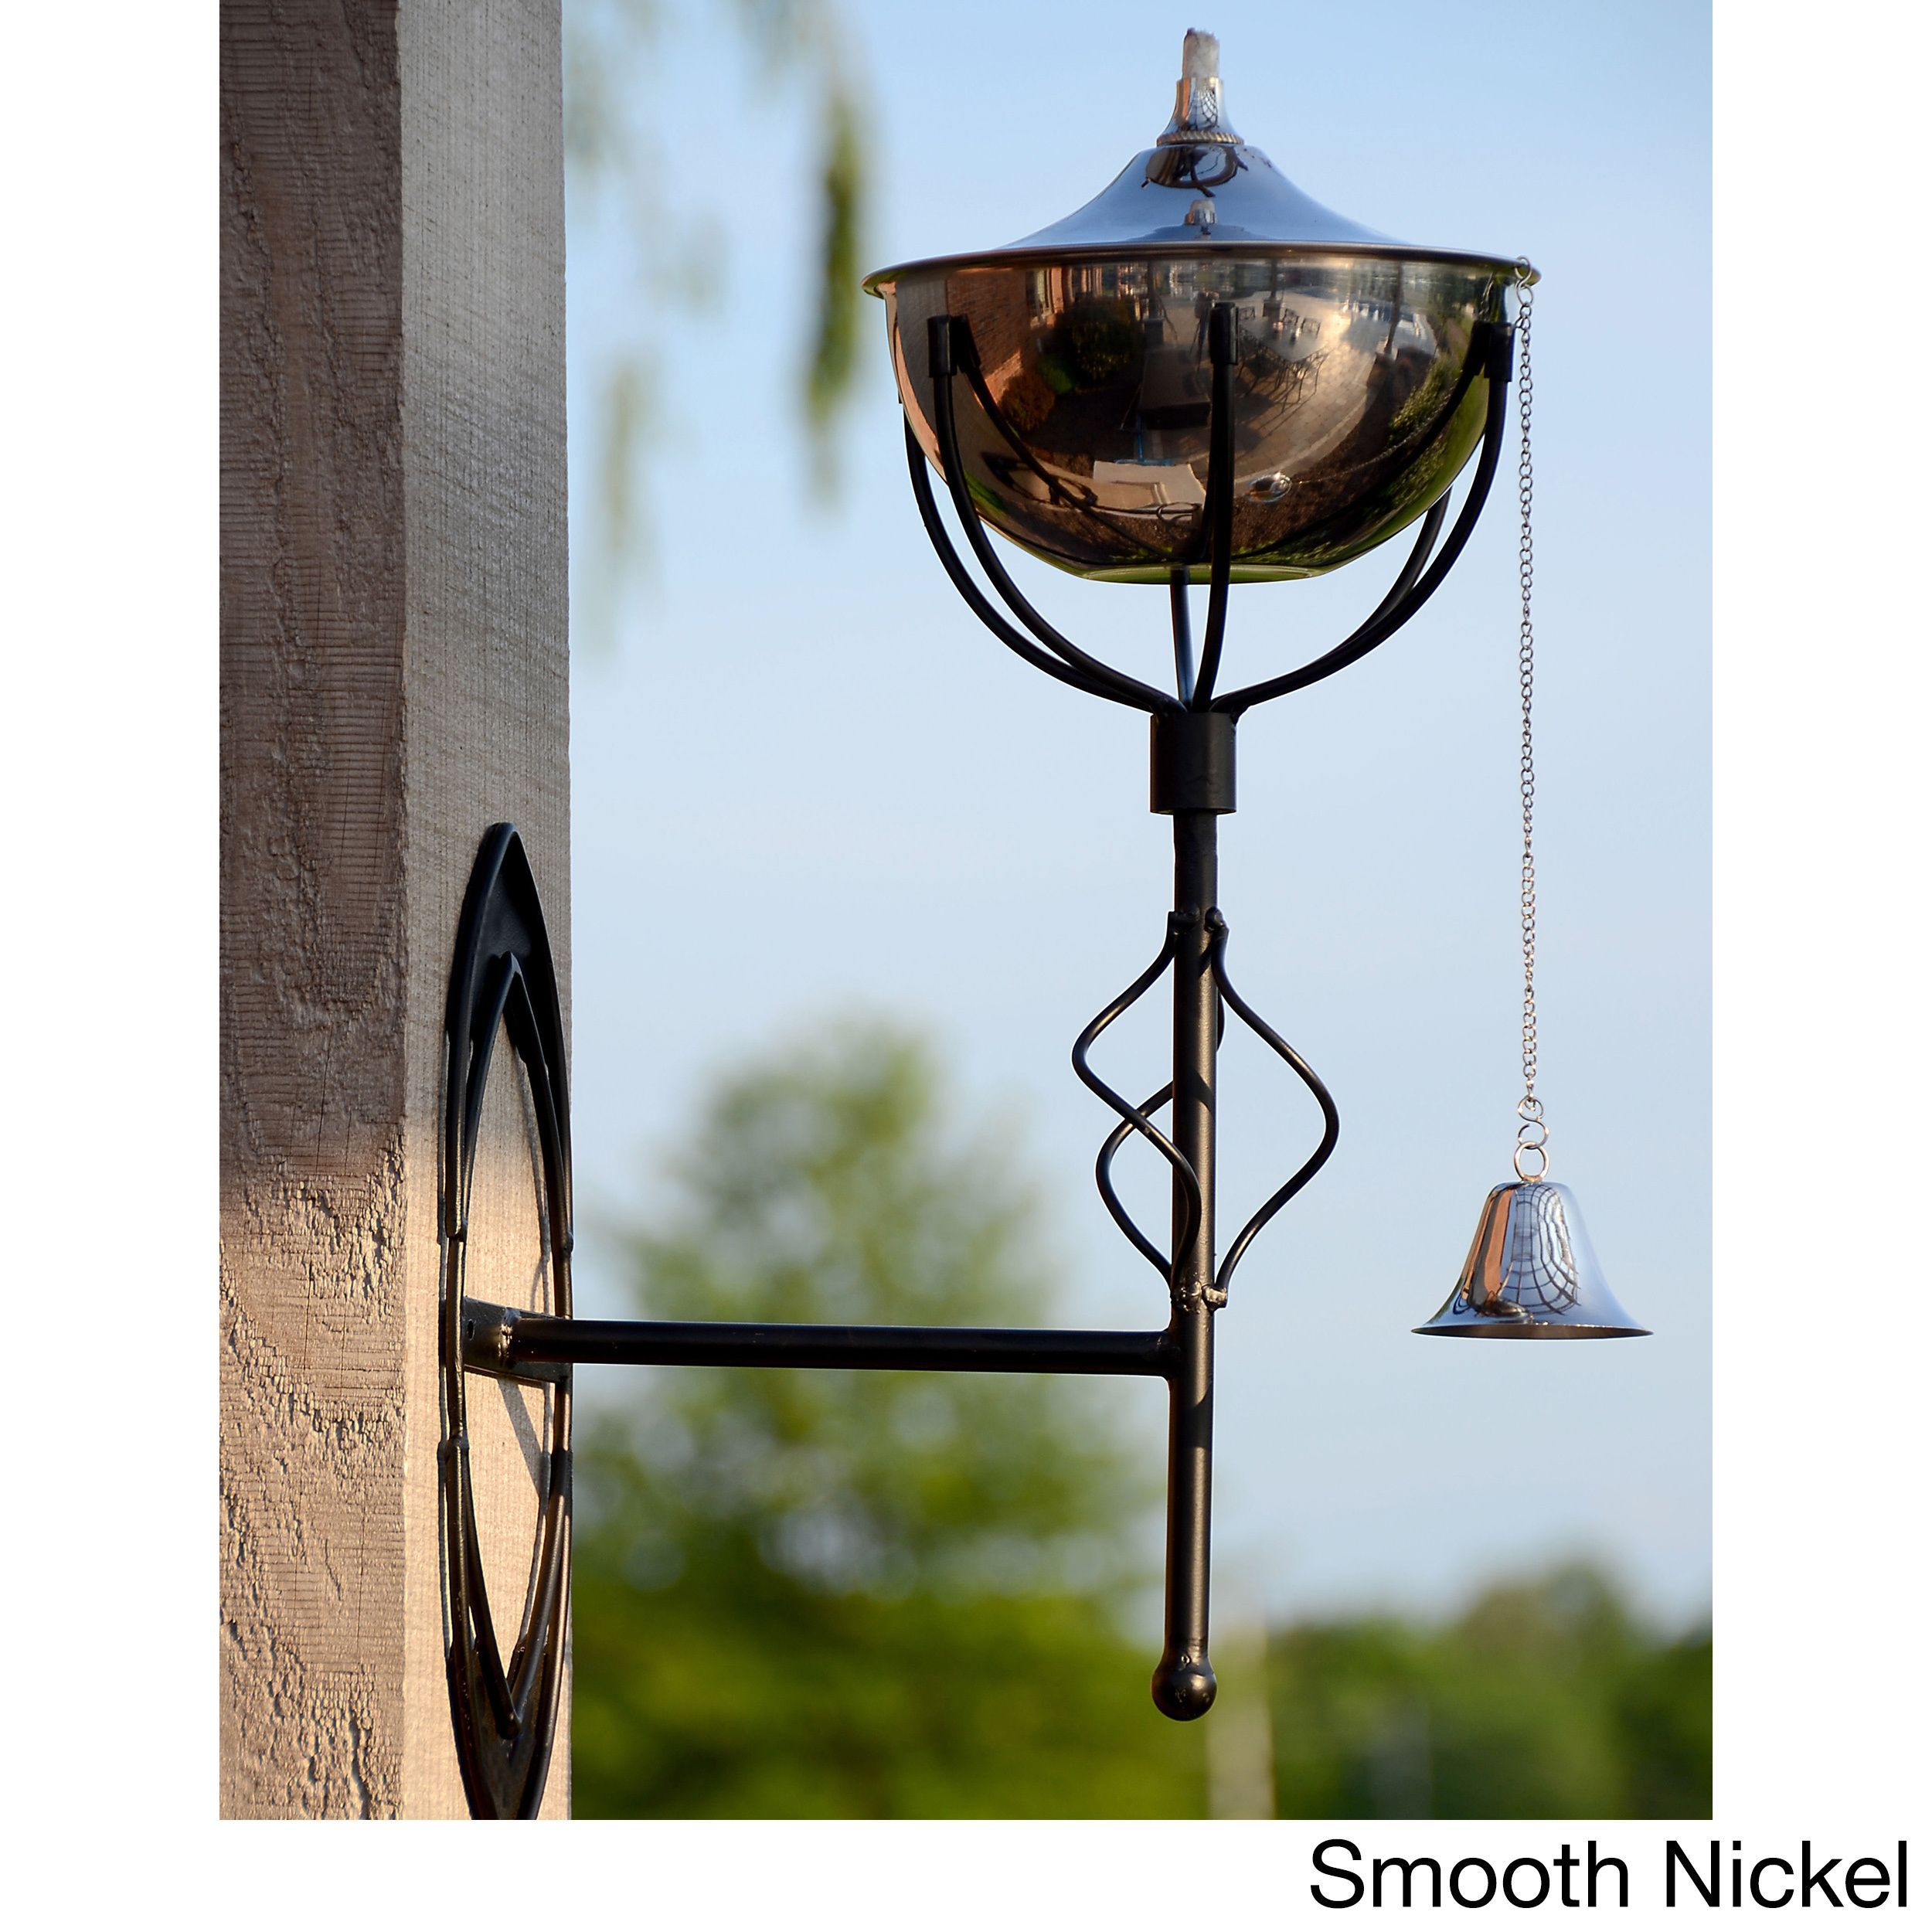 Maui Grande Outdoor Sconce Torches (Set of 2) (Smooth Nickel), Silver (Brass), Outdoor Décor